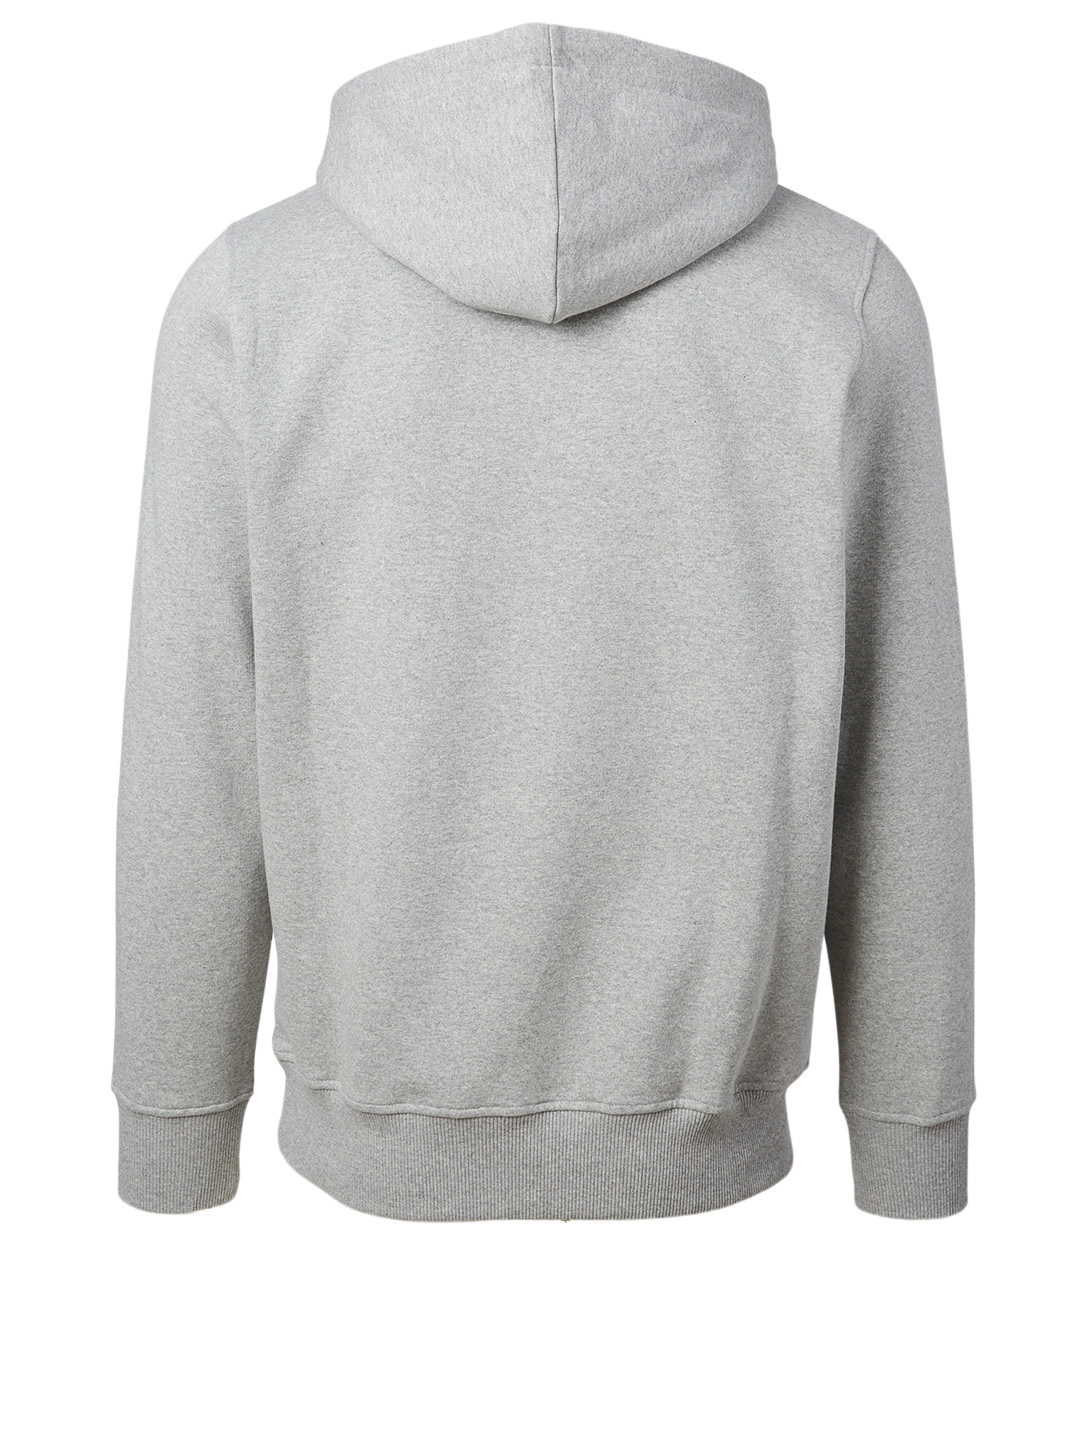 1017 ALYX 9SM Cotton-Blend Logo Hoodie Men's Grey